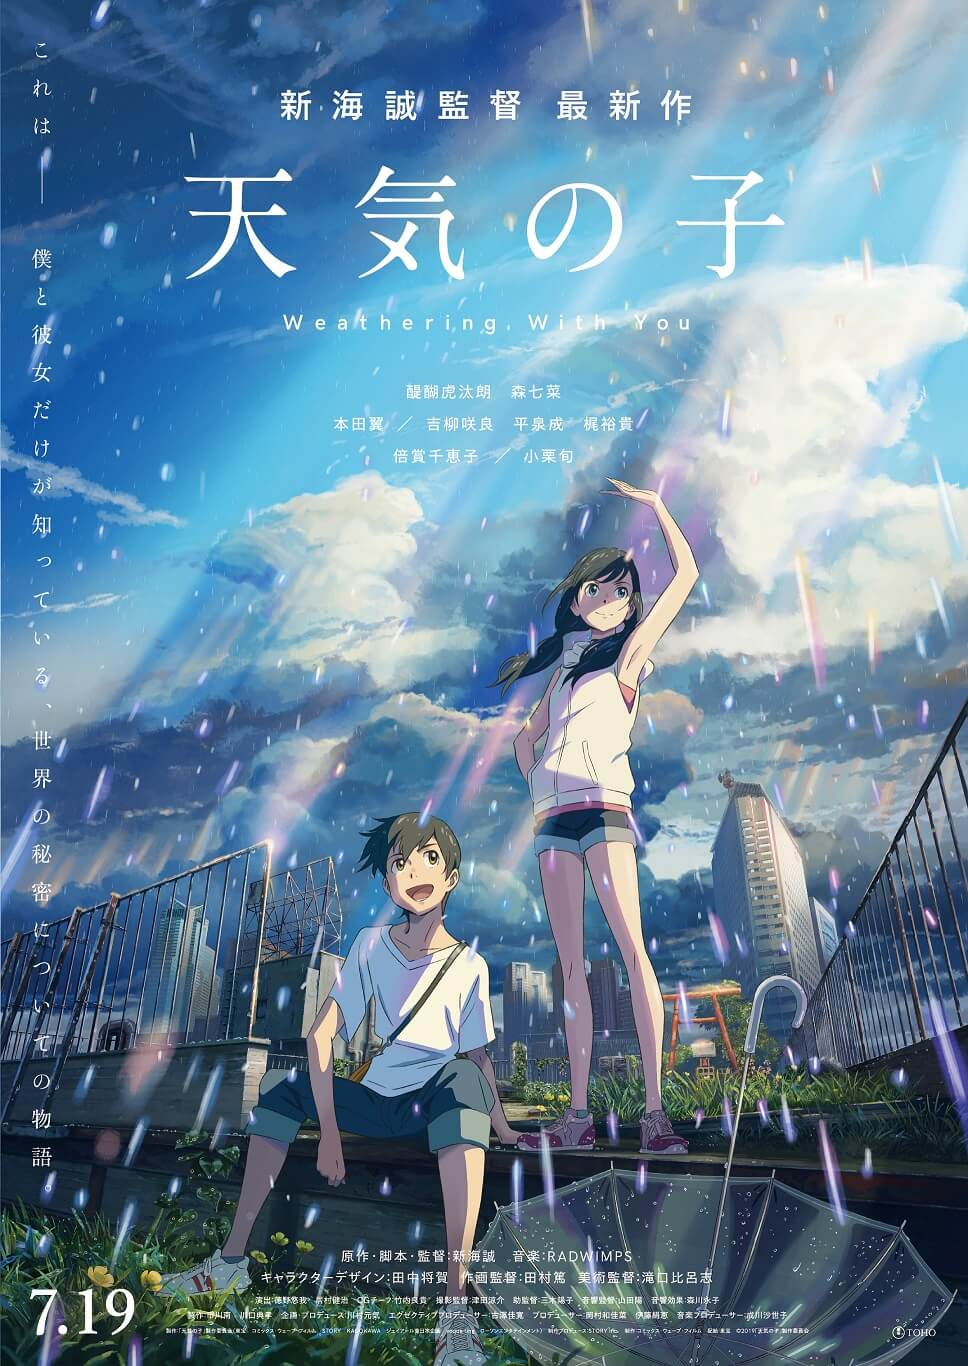 Anime Film 'Weathering with You' Trailer Released Featuring Main